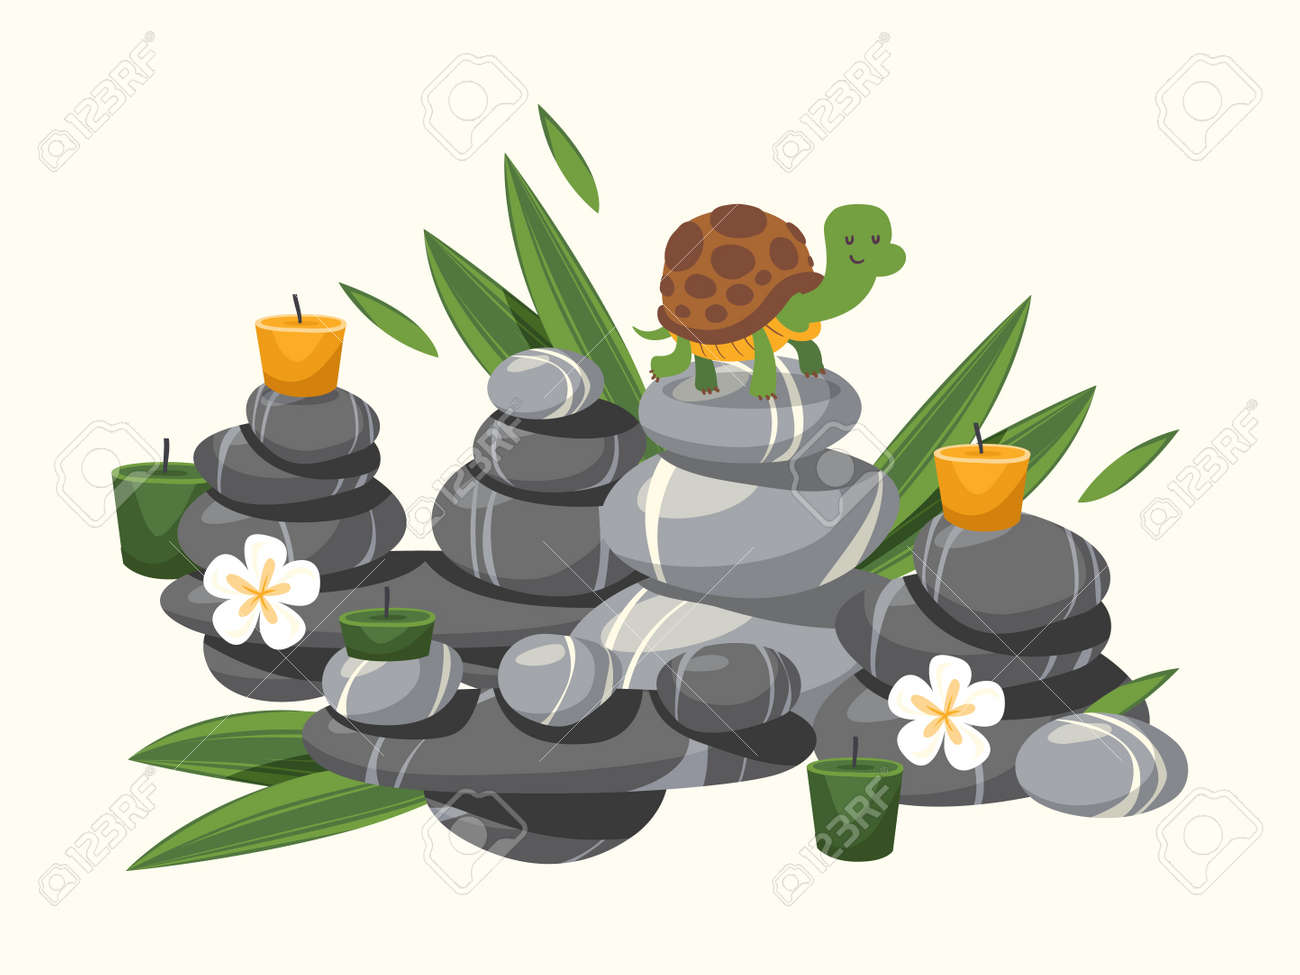 Spa Spas Candles Candle Burning Burnings Beauty Spa Bamboo Leaf Spa Concept  Free Vector Graphics, Clip Art, Icons, Photos and Images | StockUnlimited